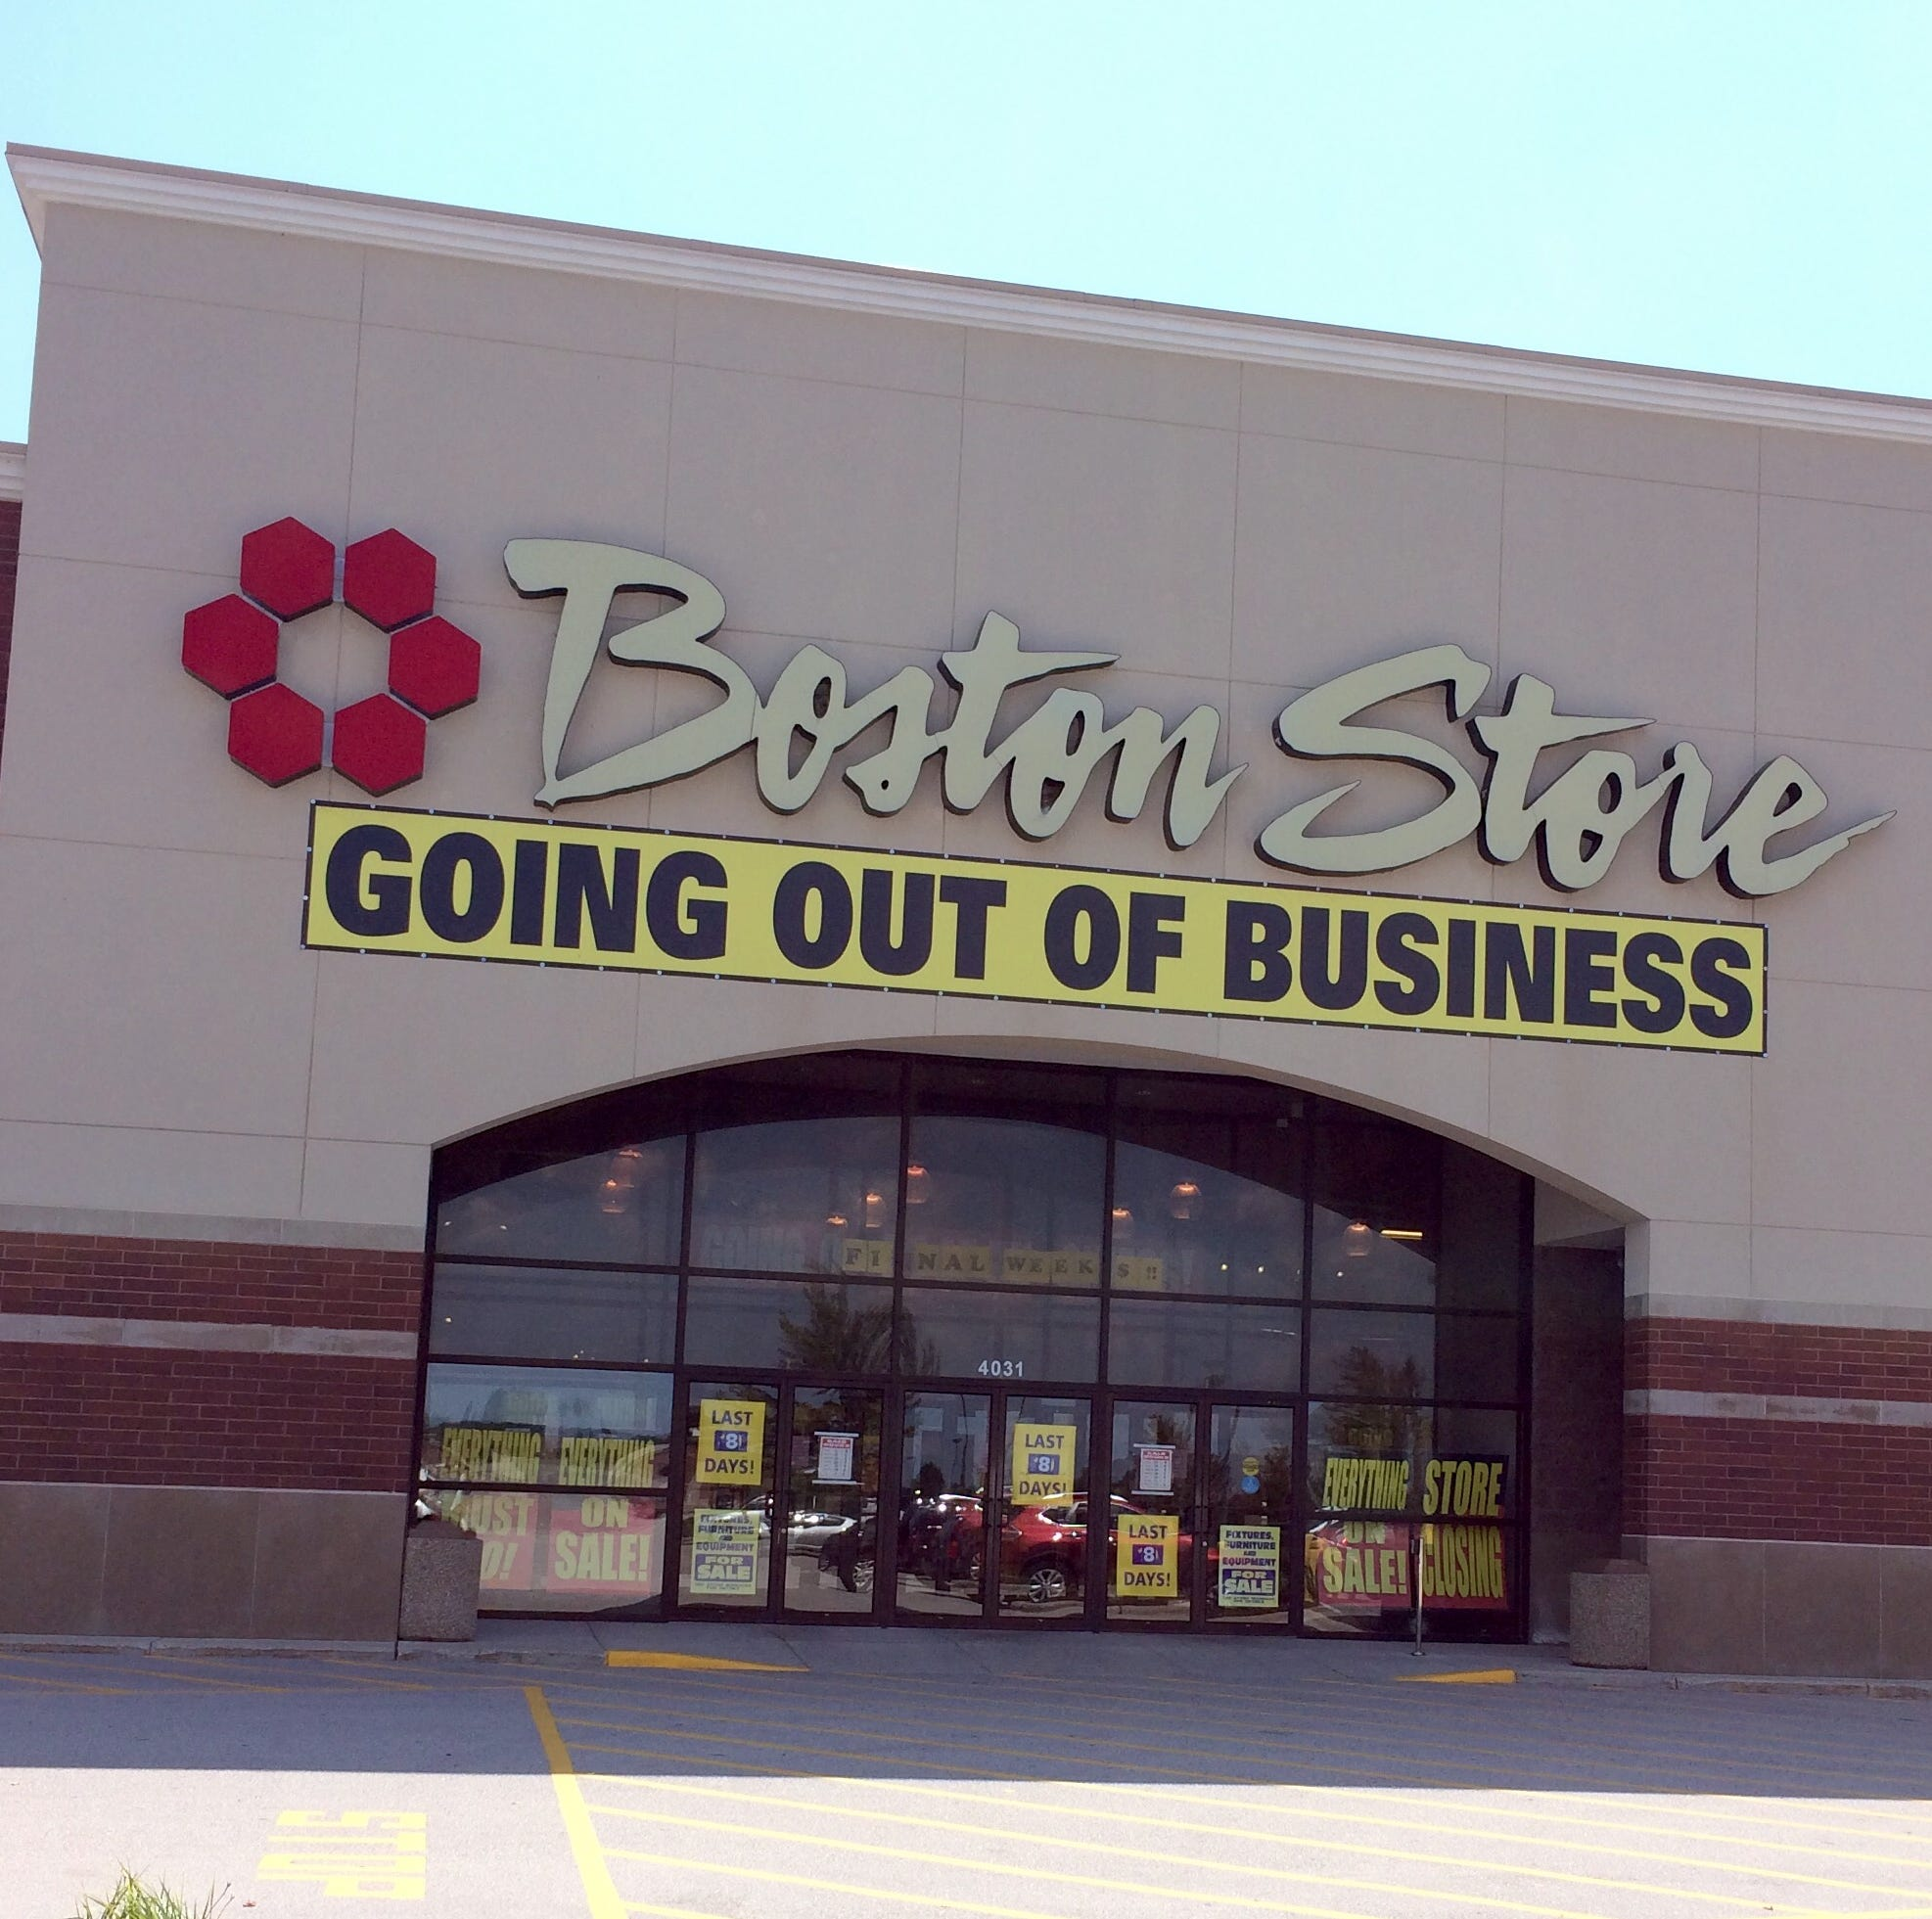 New dermatology and home goods store coming to Sheboygan in business news